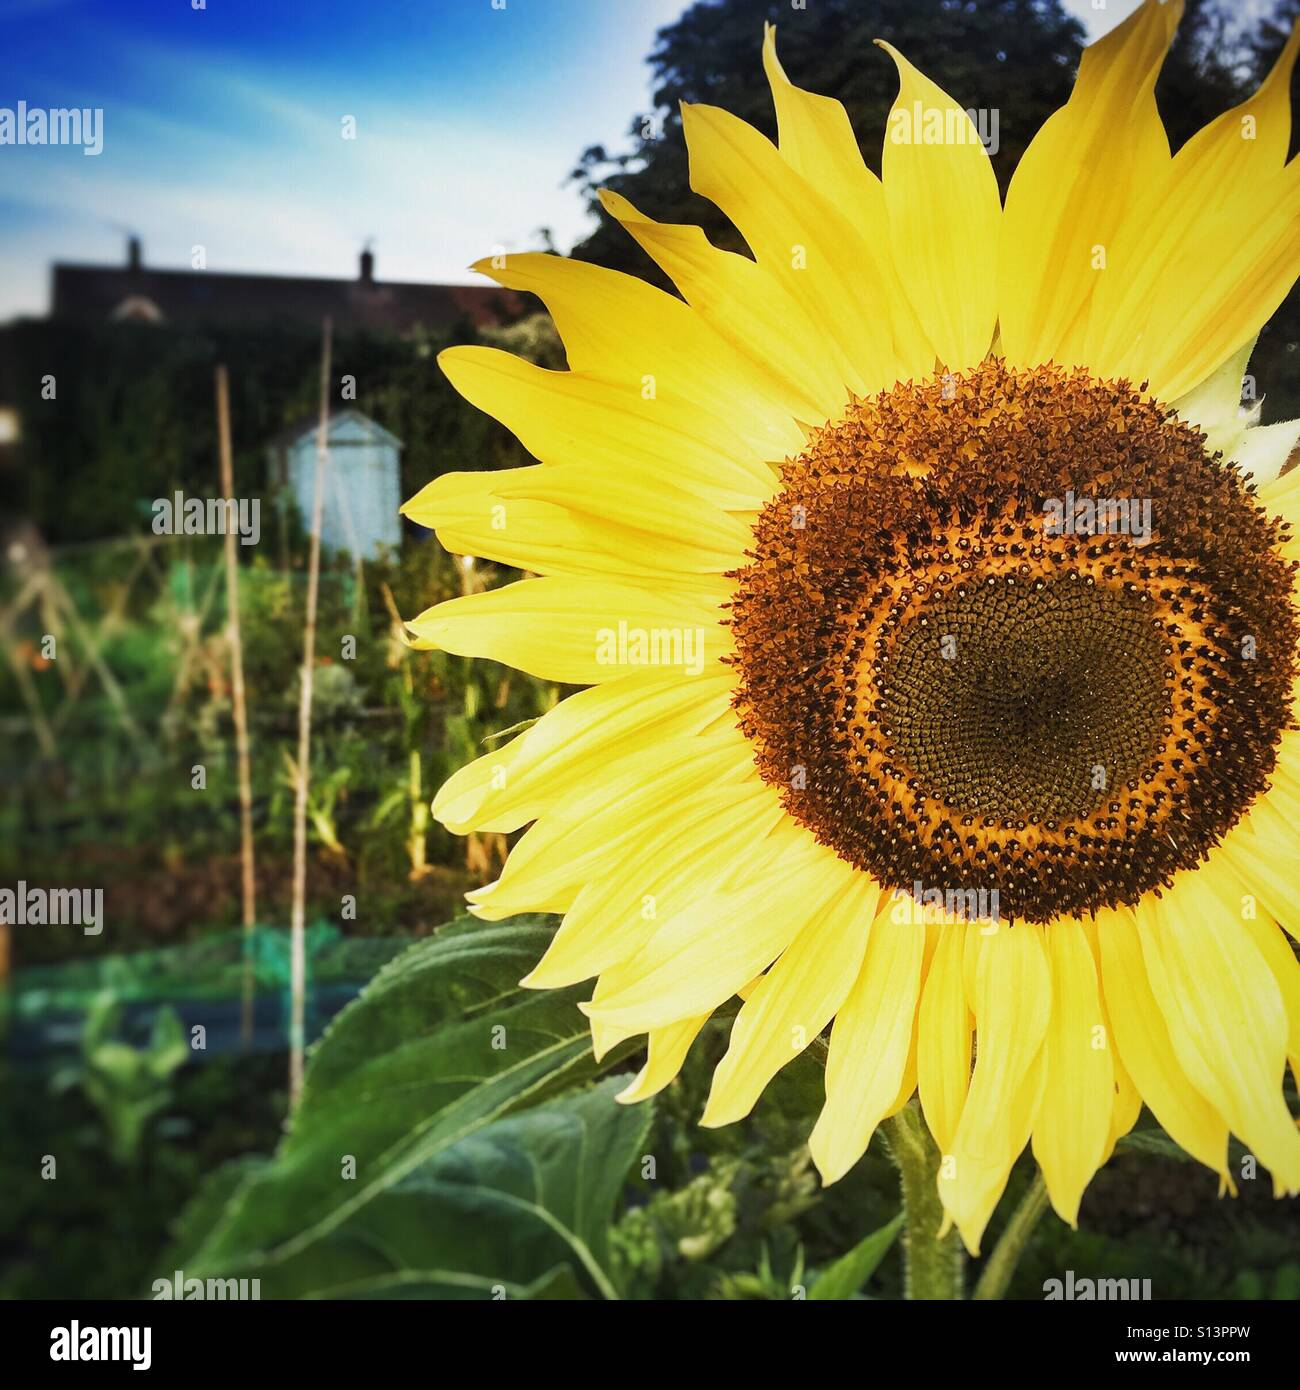 Large sunflower on allotment in Bristol Stock Photo